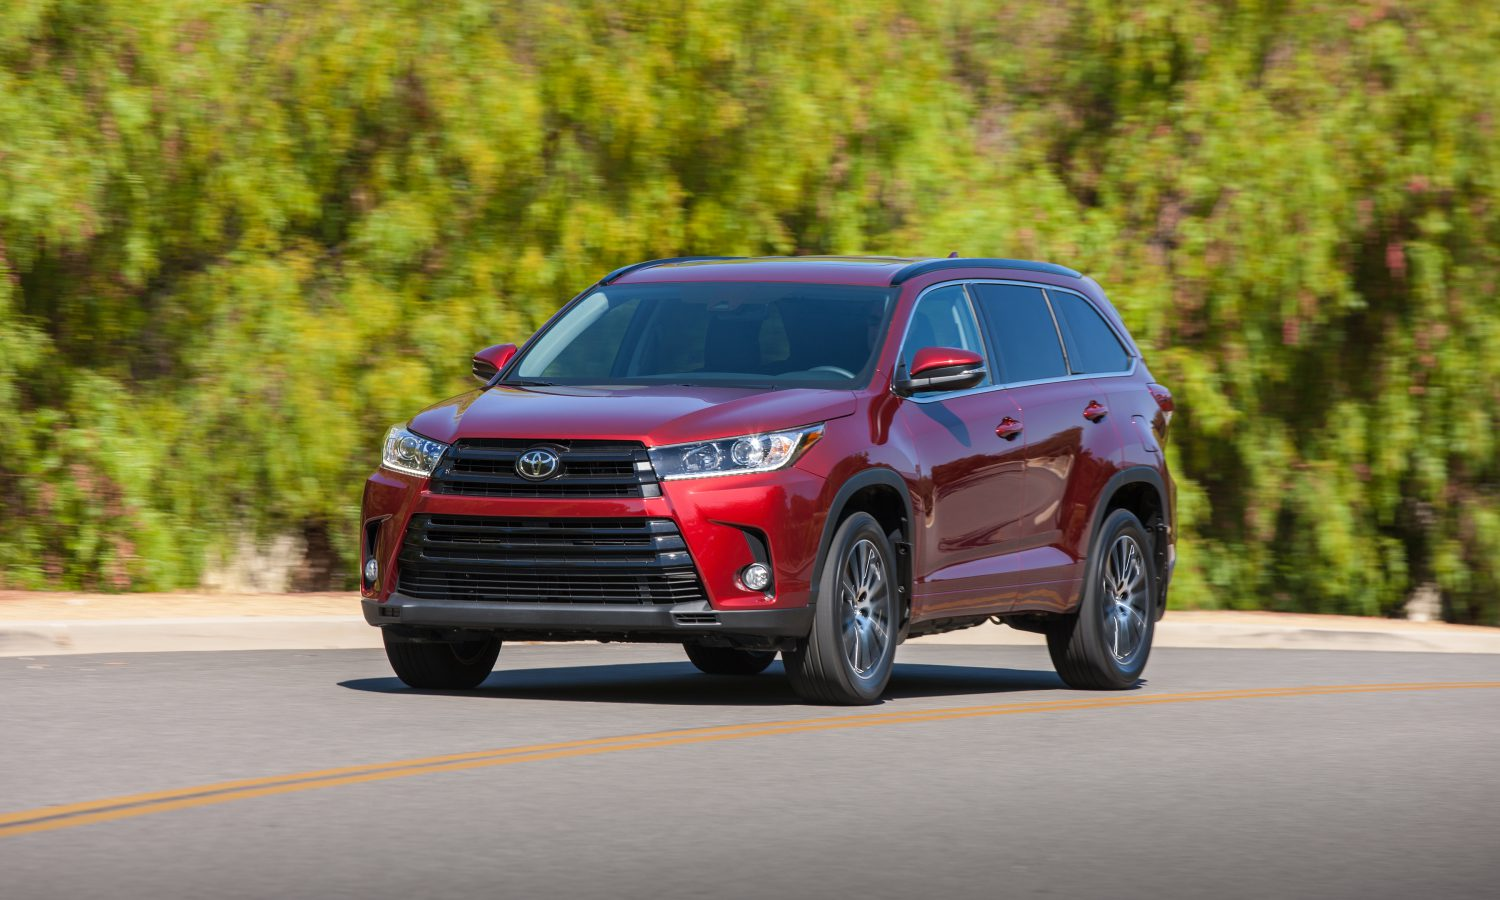 2017 Highlander with More Power, More Safety and More Model Choices Adds up to More Value Pricing